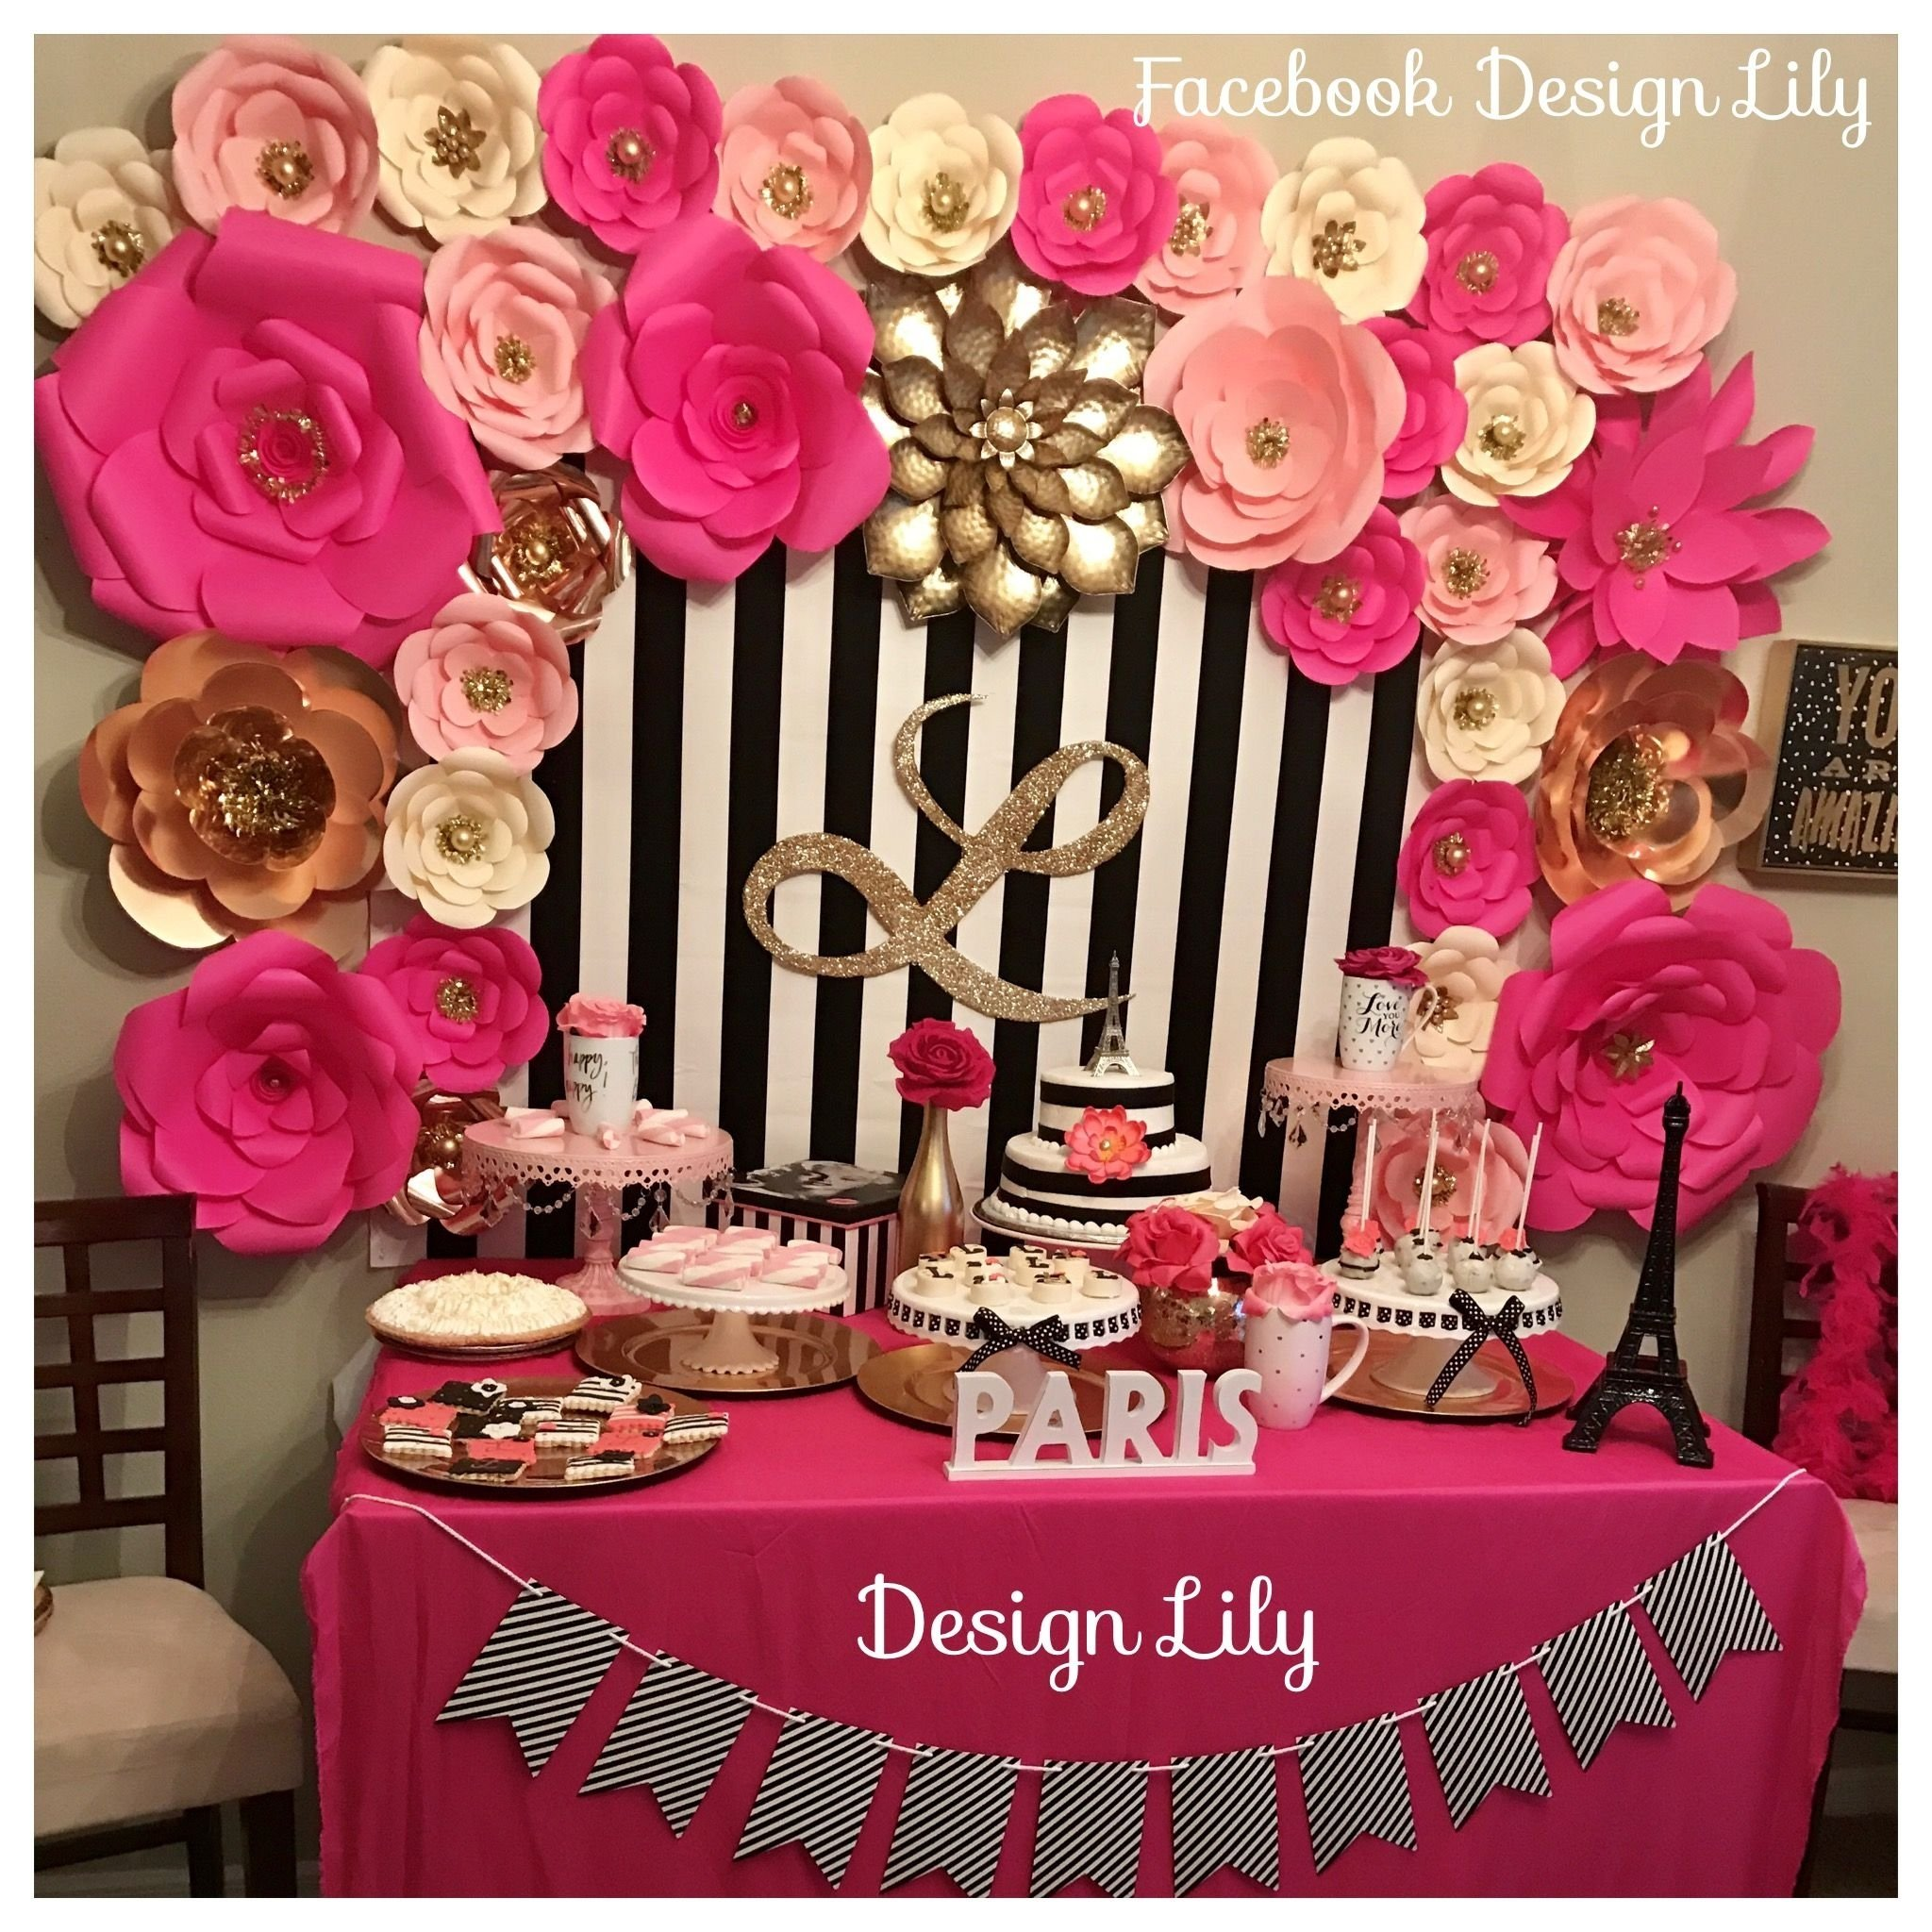 10 Beautiful Pink And Black Birthday Party Ideas decorations kate spade white black pink fusia and gold party 1 2020